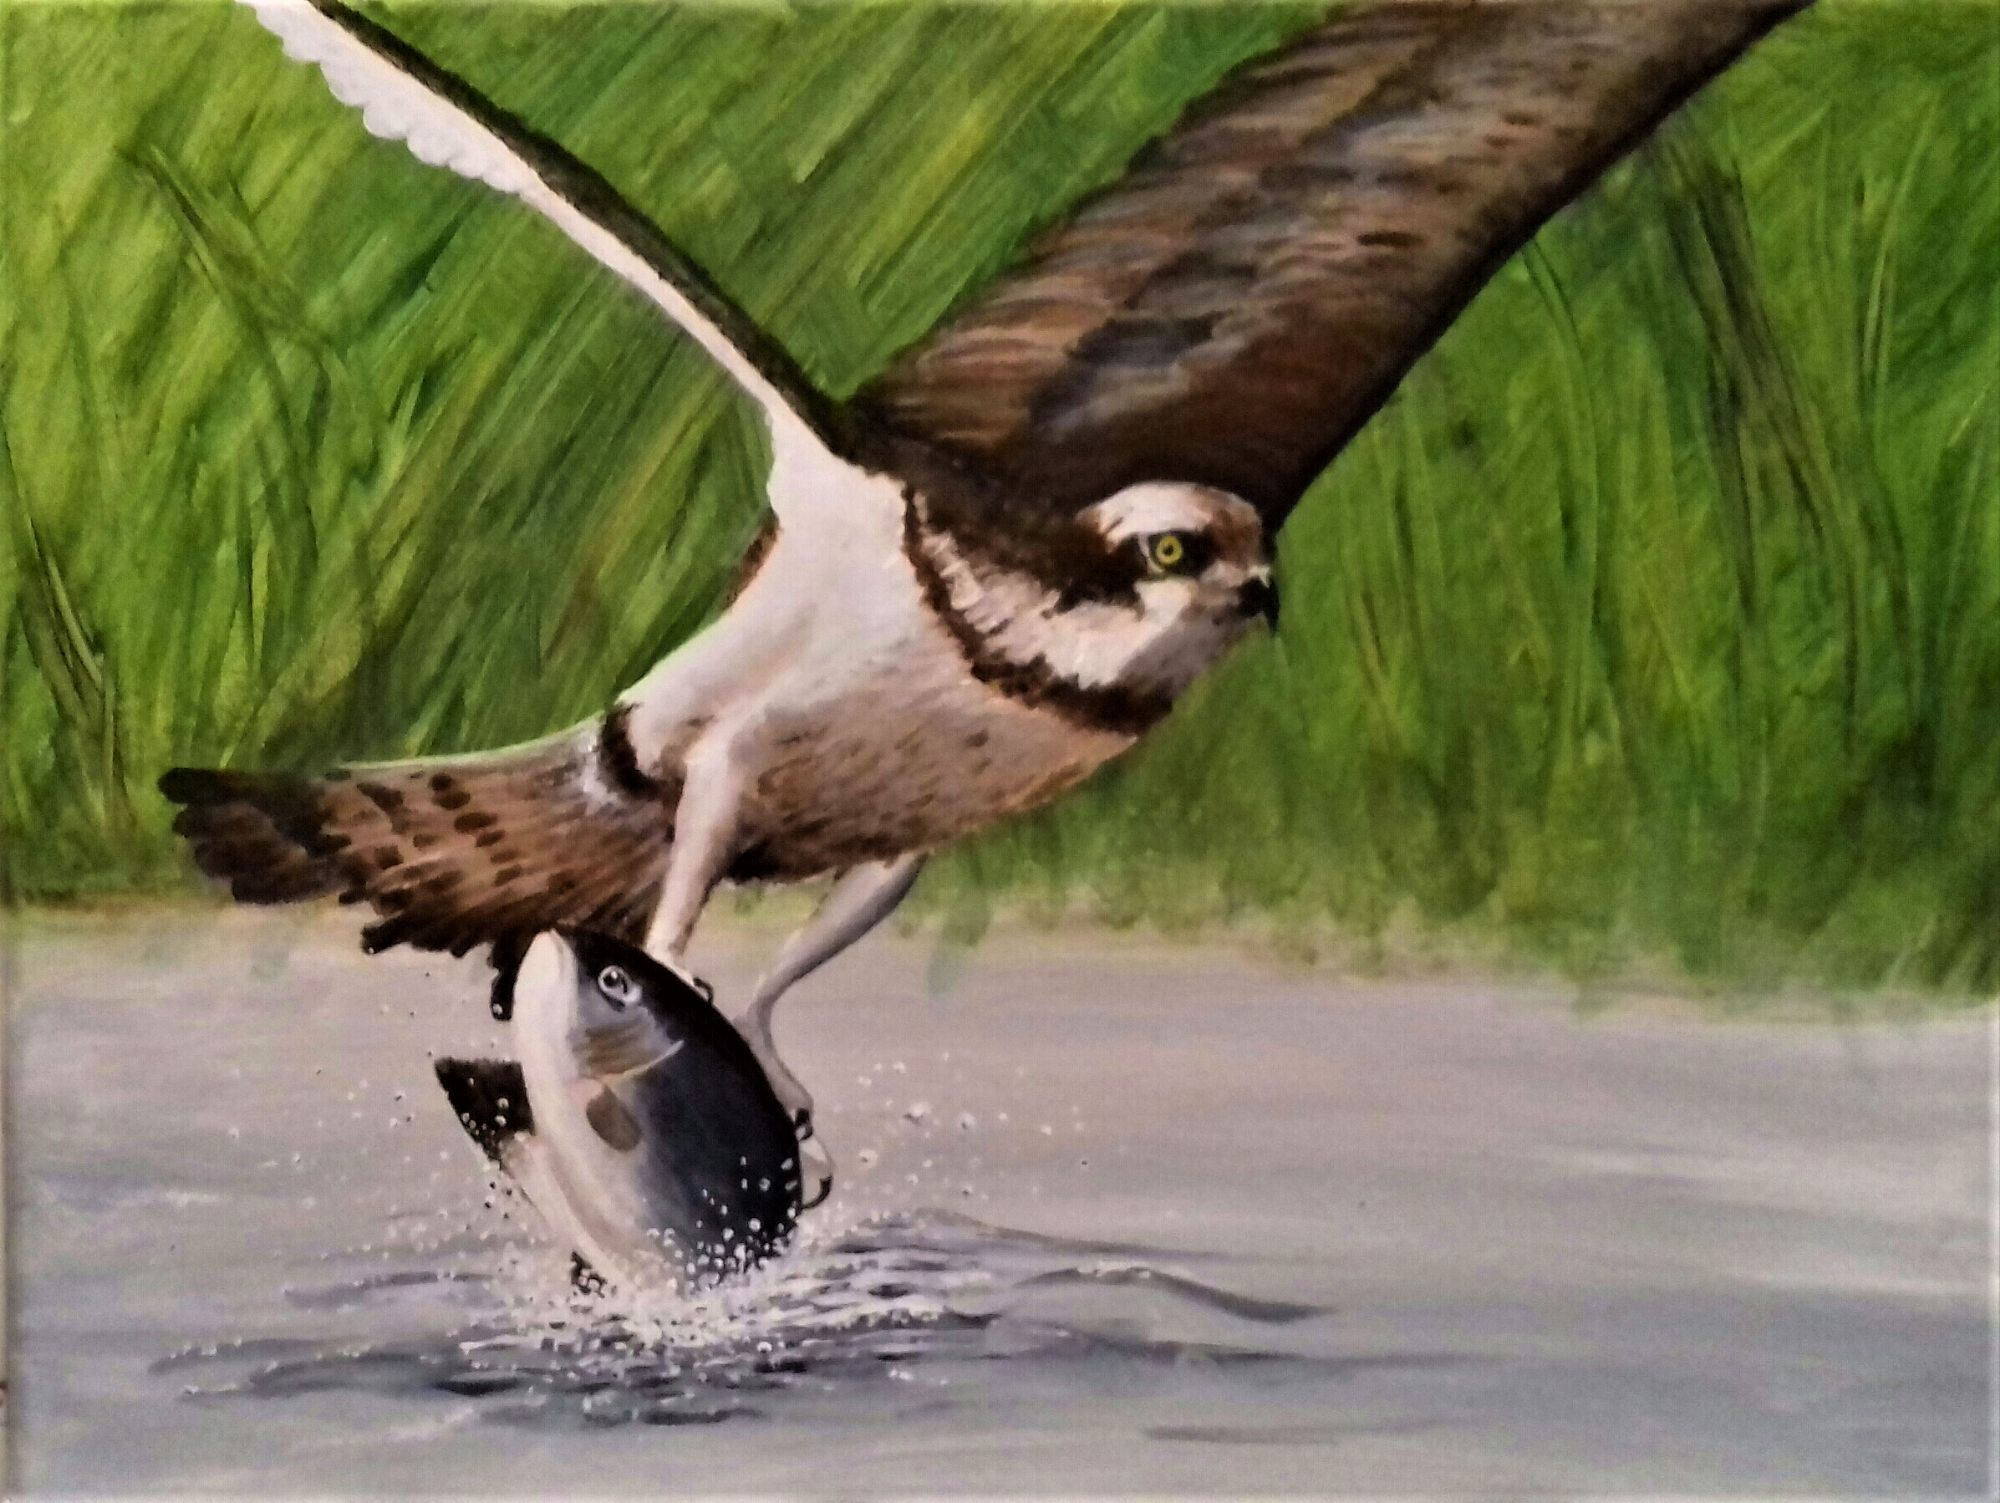 Osprey   ________________________________ acrylic on stretched canvas  (40cm x 30cm x 2.5cm)           £30